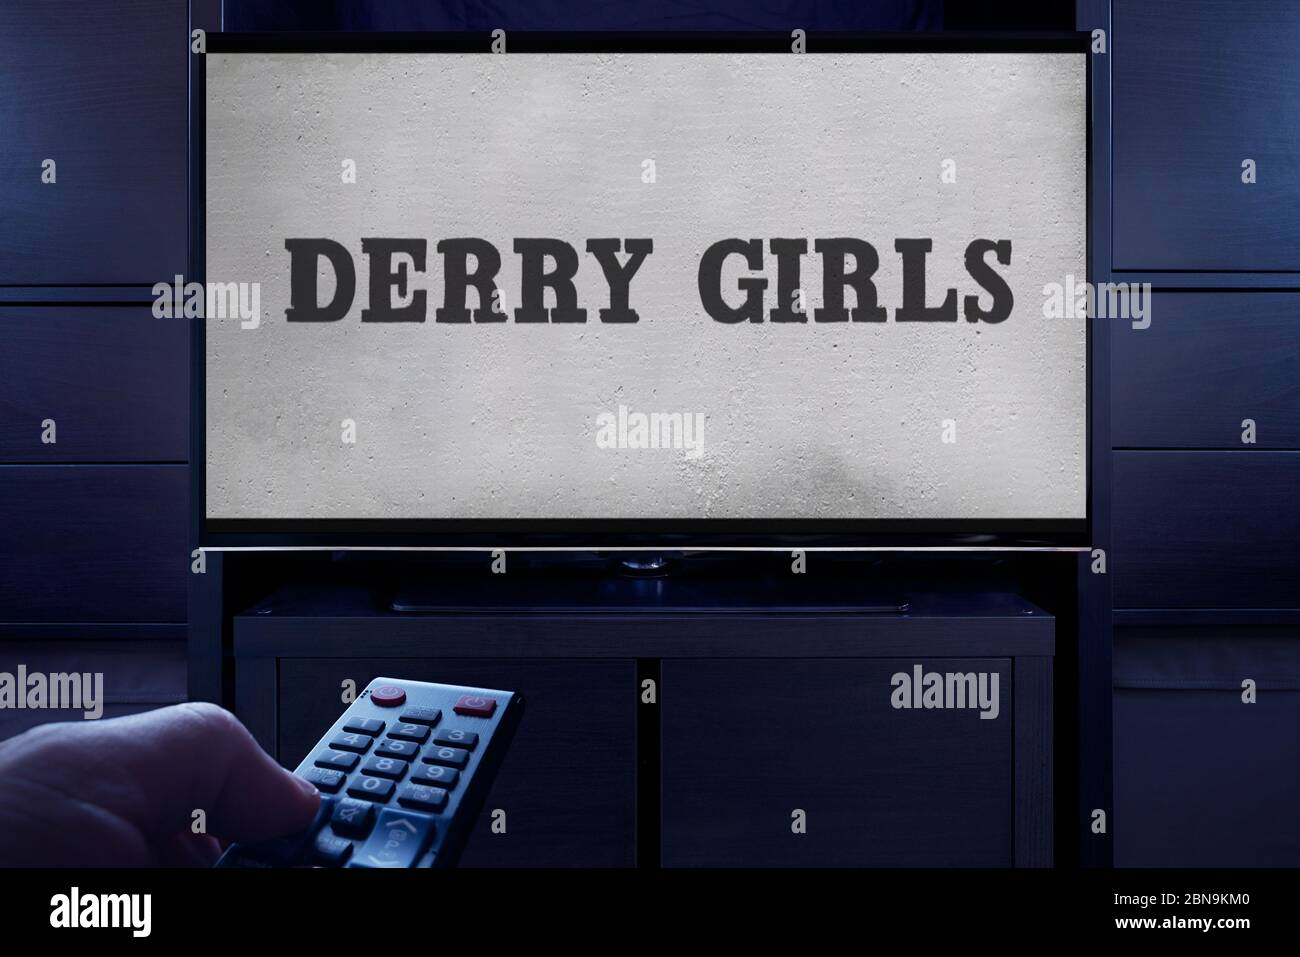 A man points a TV remote at the television which displays the Derry Girls main title screen (Editorial use only). Stock Photo